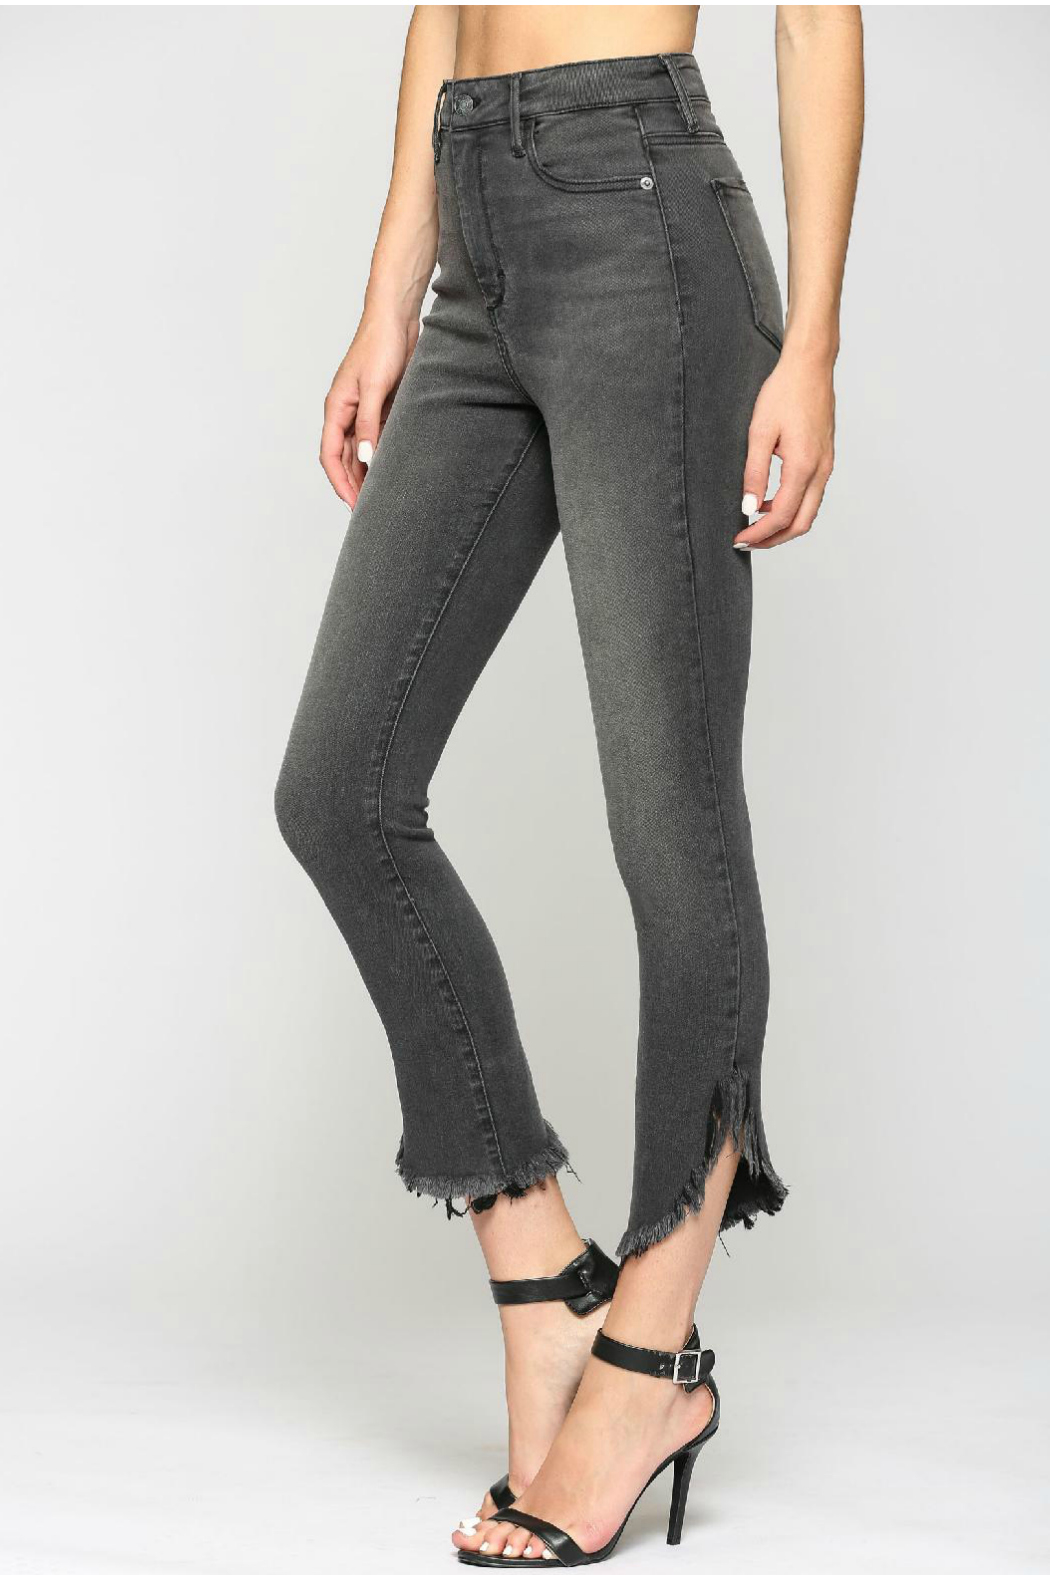 Hidden Jeans TAYLOR GREY HIGH RISE FRAYED SKINNY - Front Full Image